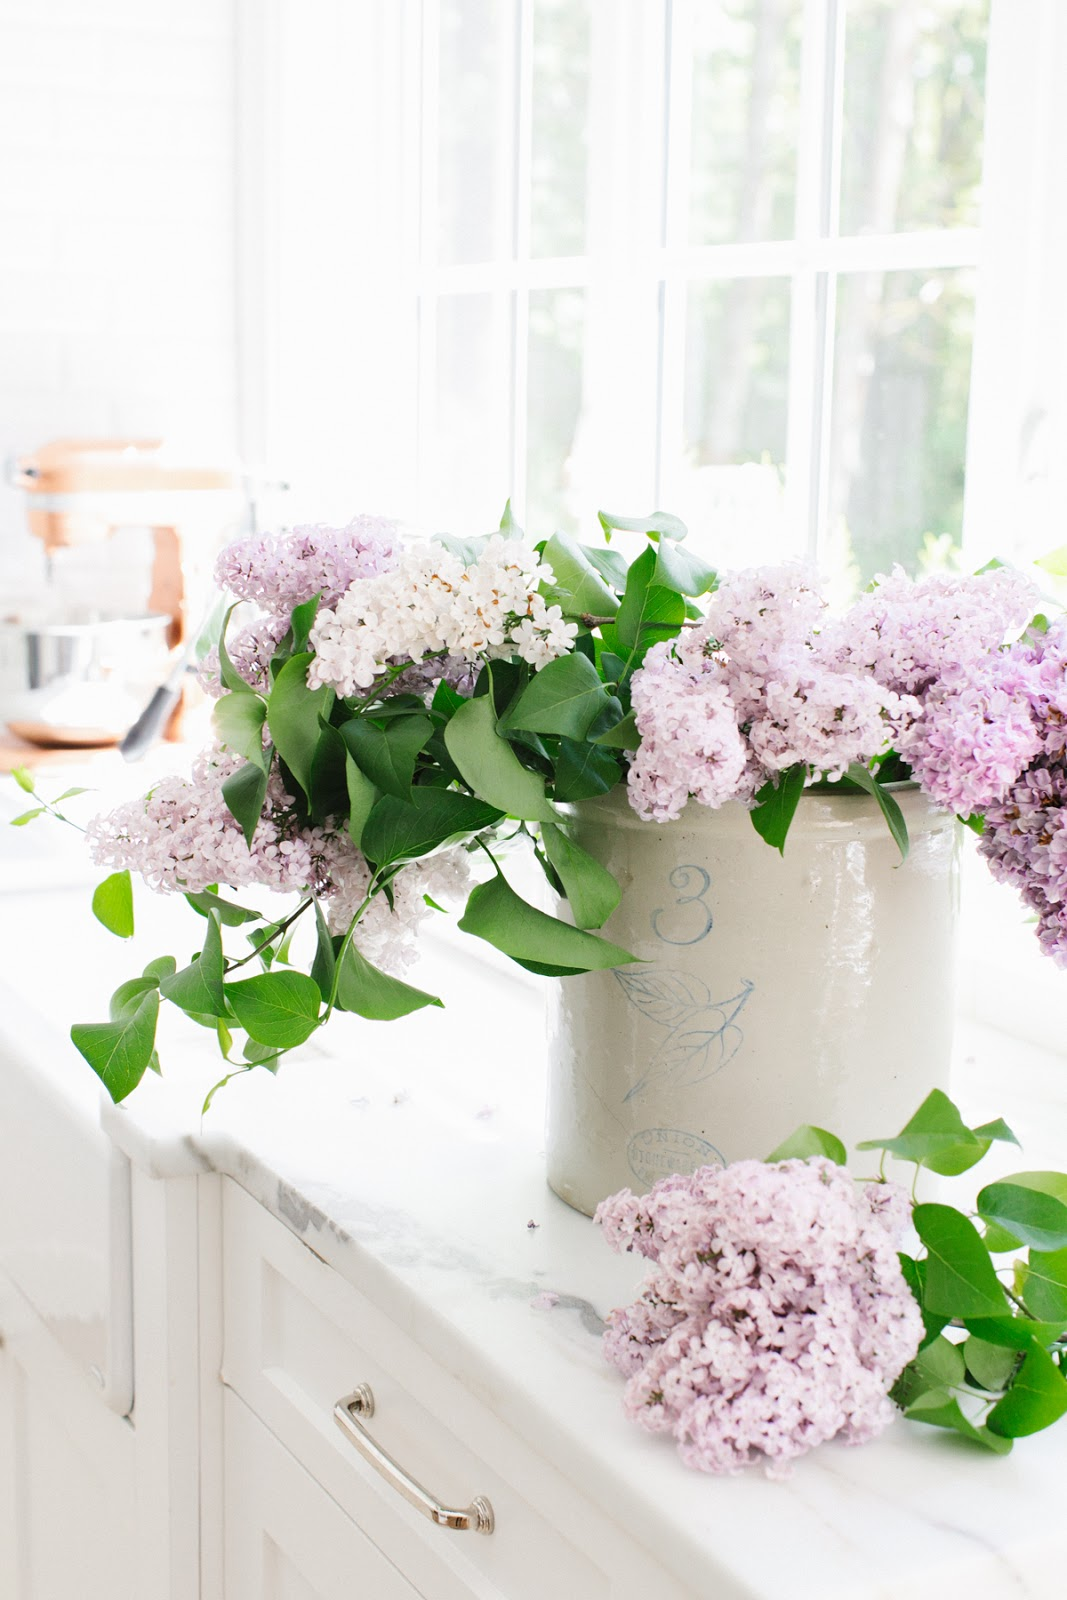 Daily Inspiration Dina Bandman Interiors, Lilac Sugar Scones and Flowers by Cool Chic Style Fashion